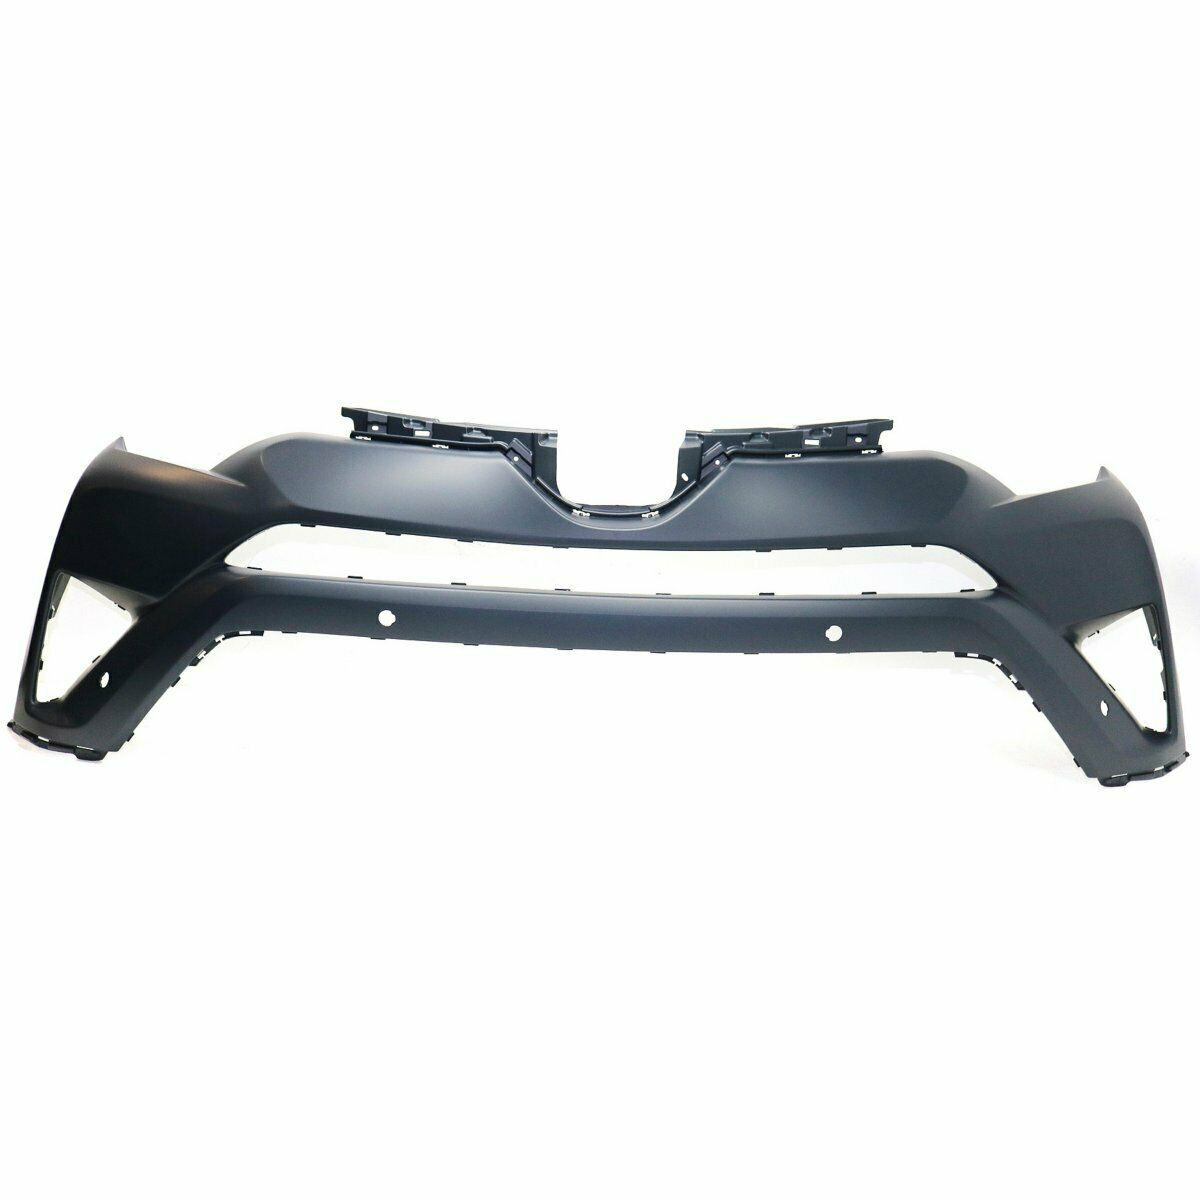 2016-2017 Toyota RAV4 Front Upper Bumper W/Snsr Holes Painted to Match